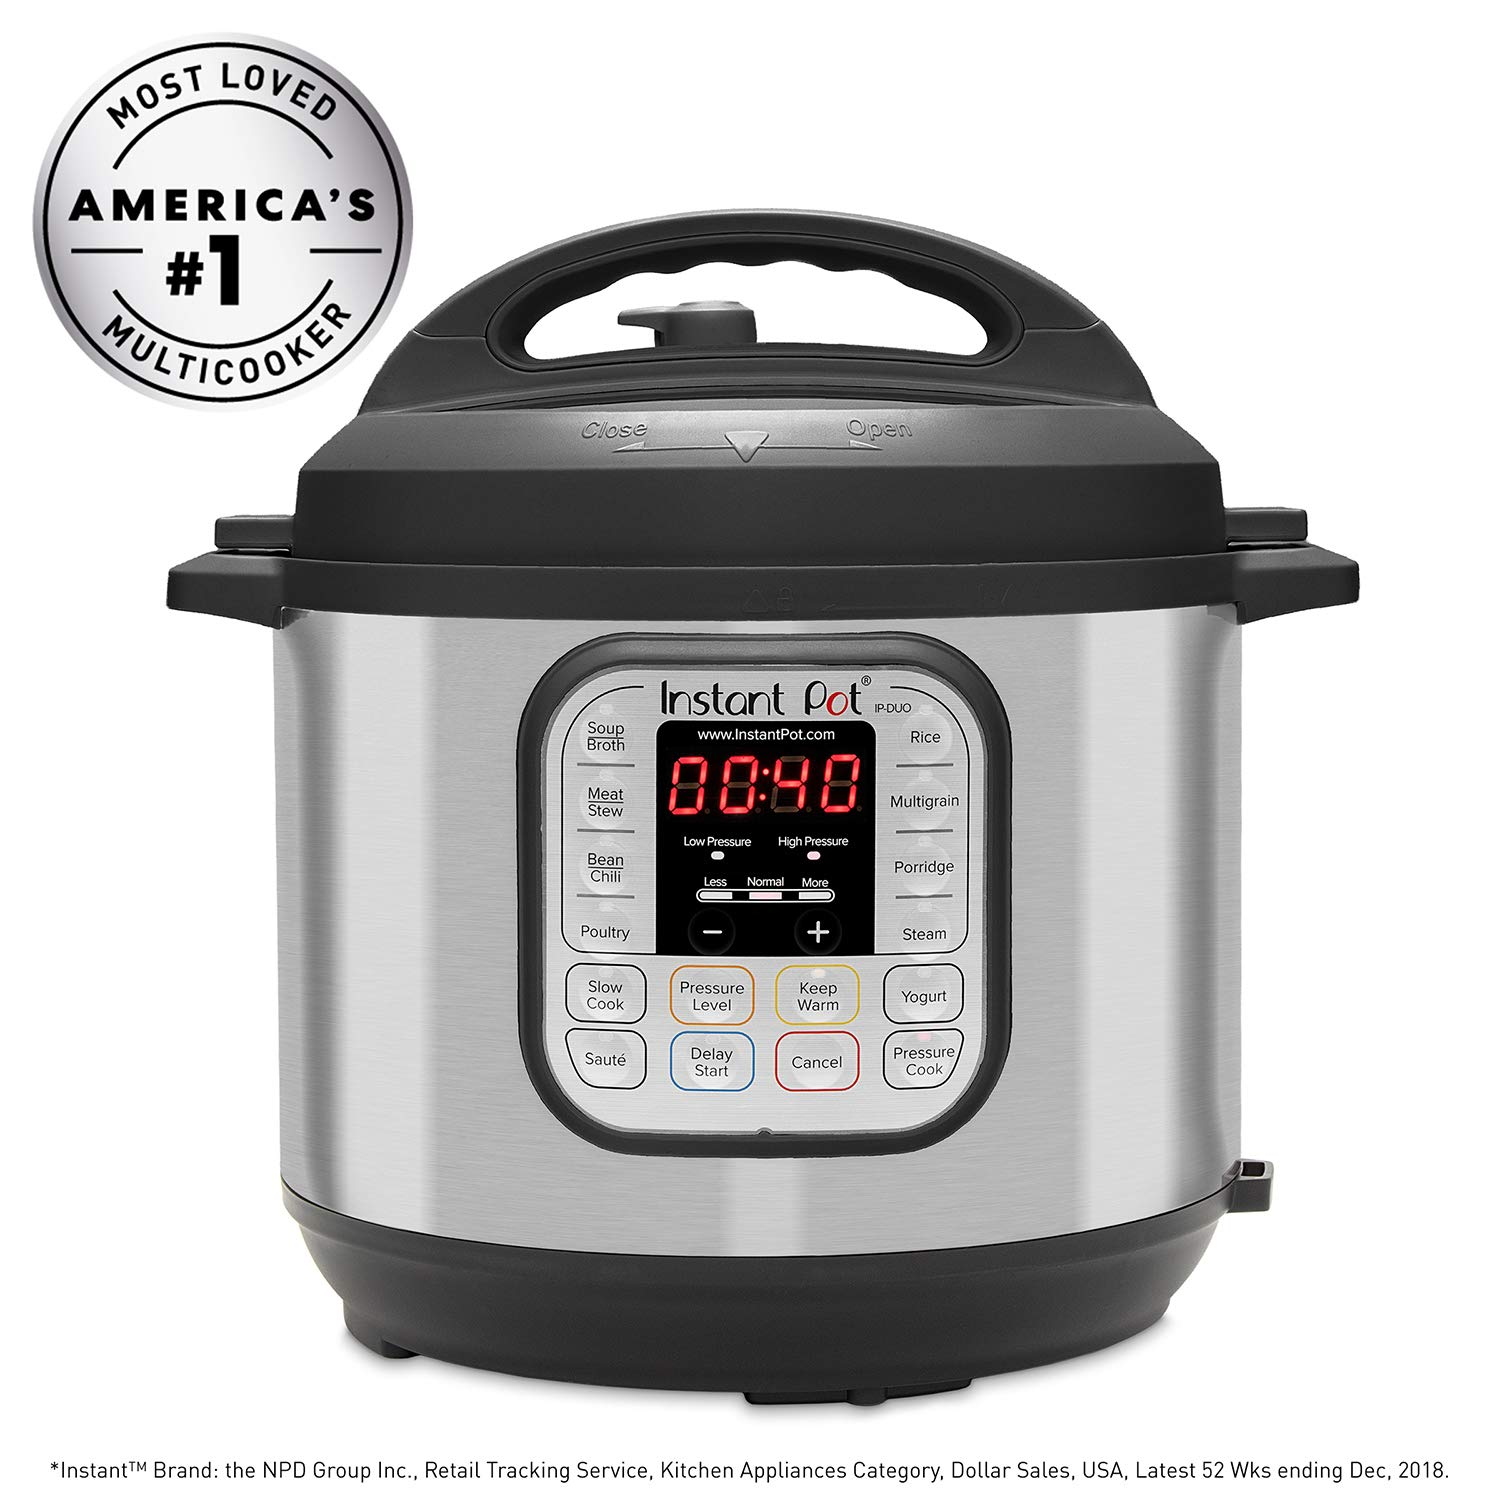 Instant Pot DUO60 6 Qt 7-in-1 Multi-Use Programmable Pressure Cooker, Slow Cooker, Rice Cooker, Steamer, Sauté, Yogurt Maker and Warmer by Instant Pot